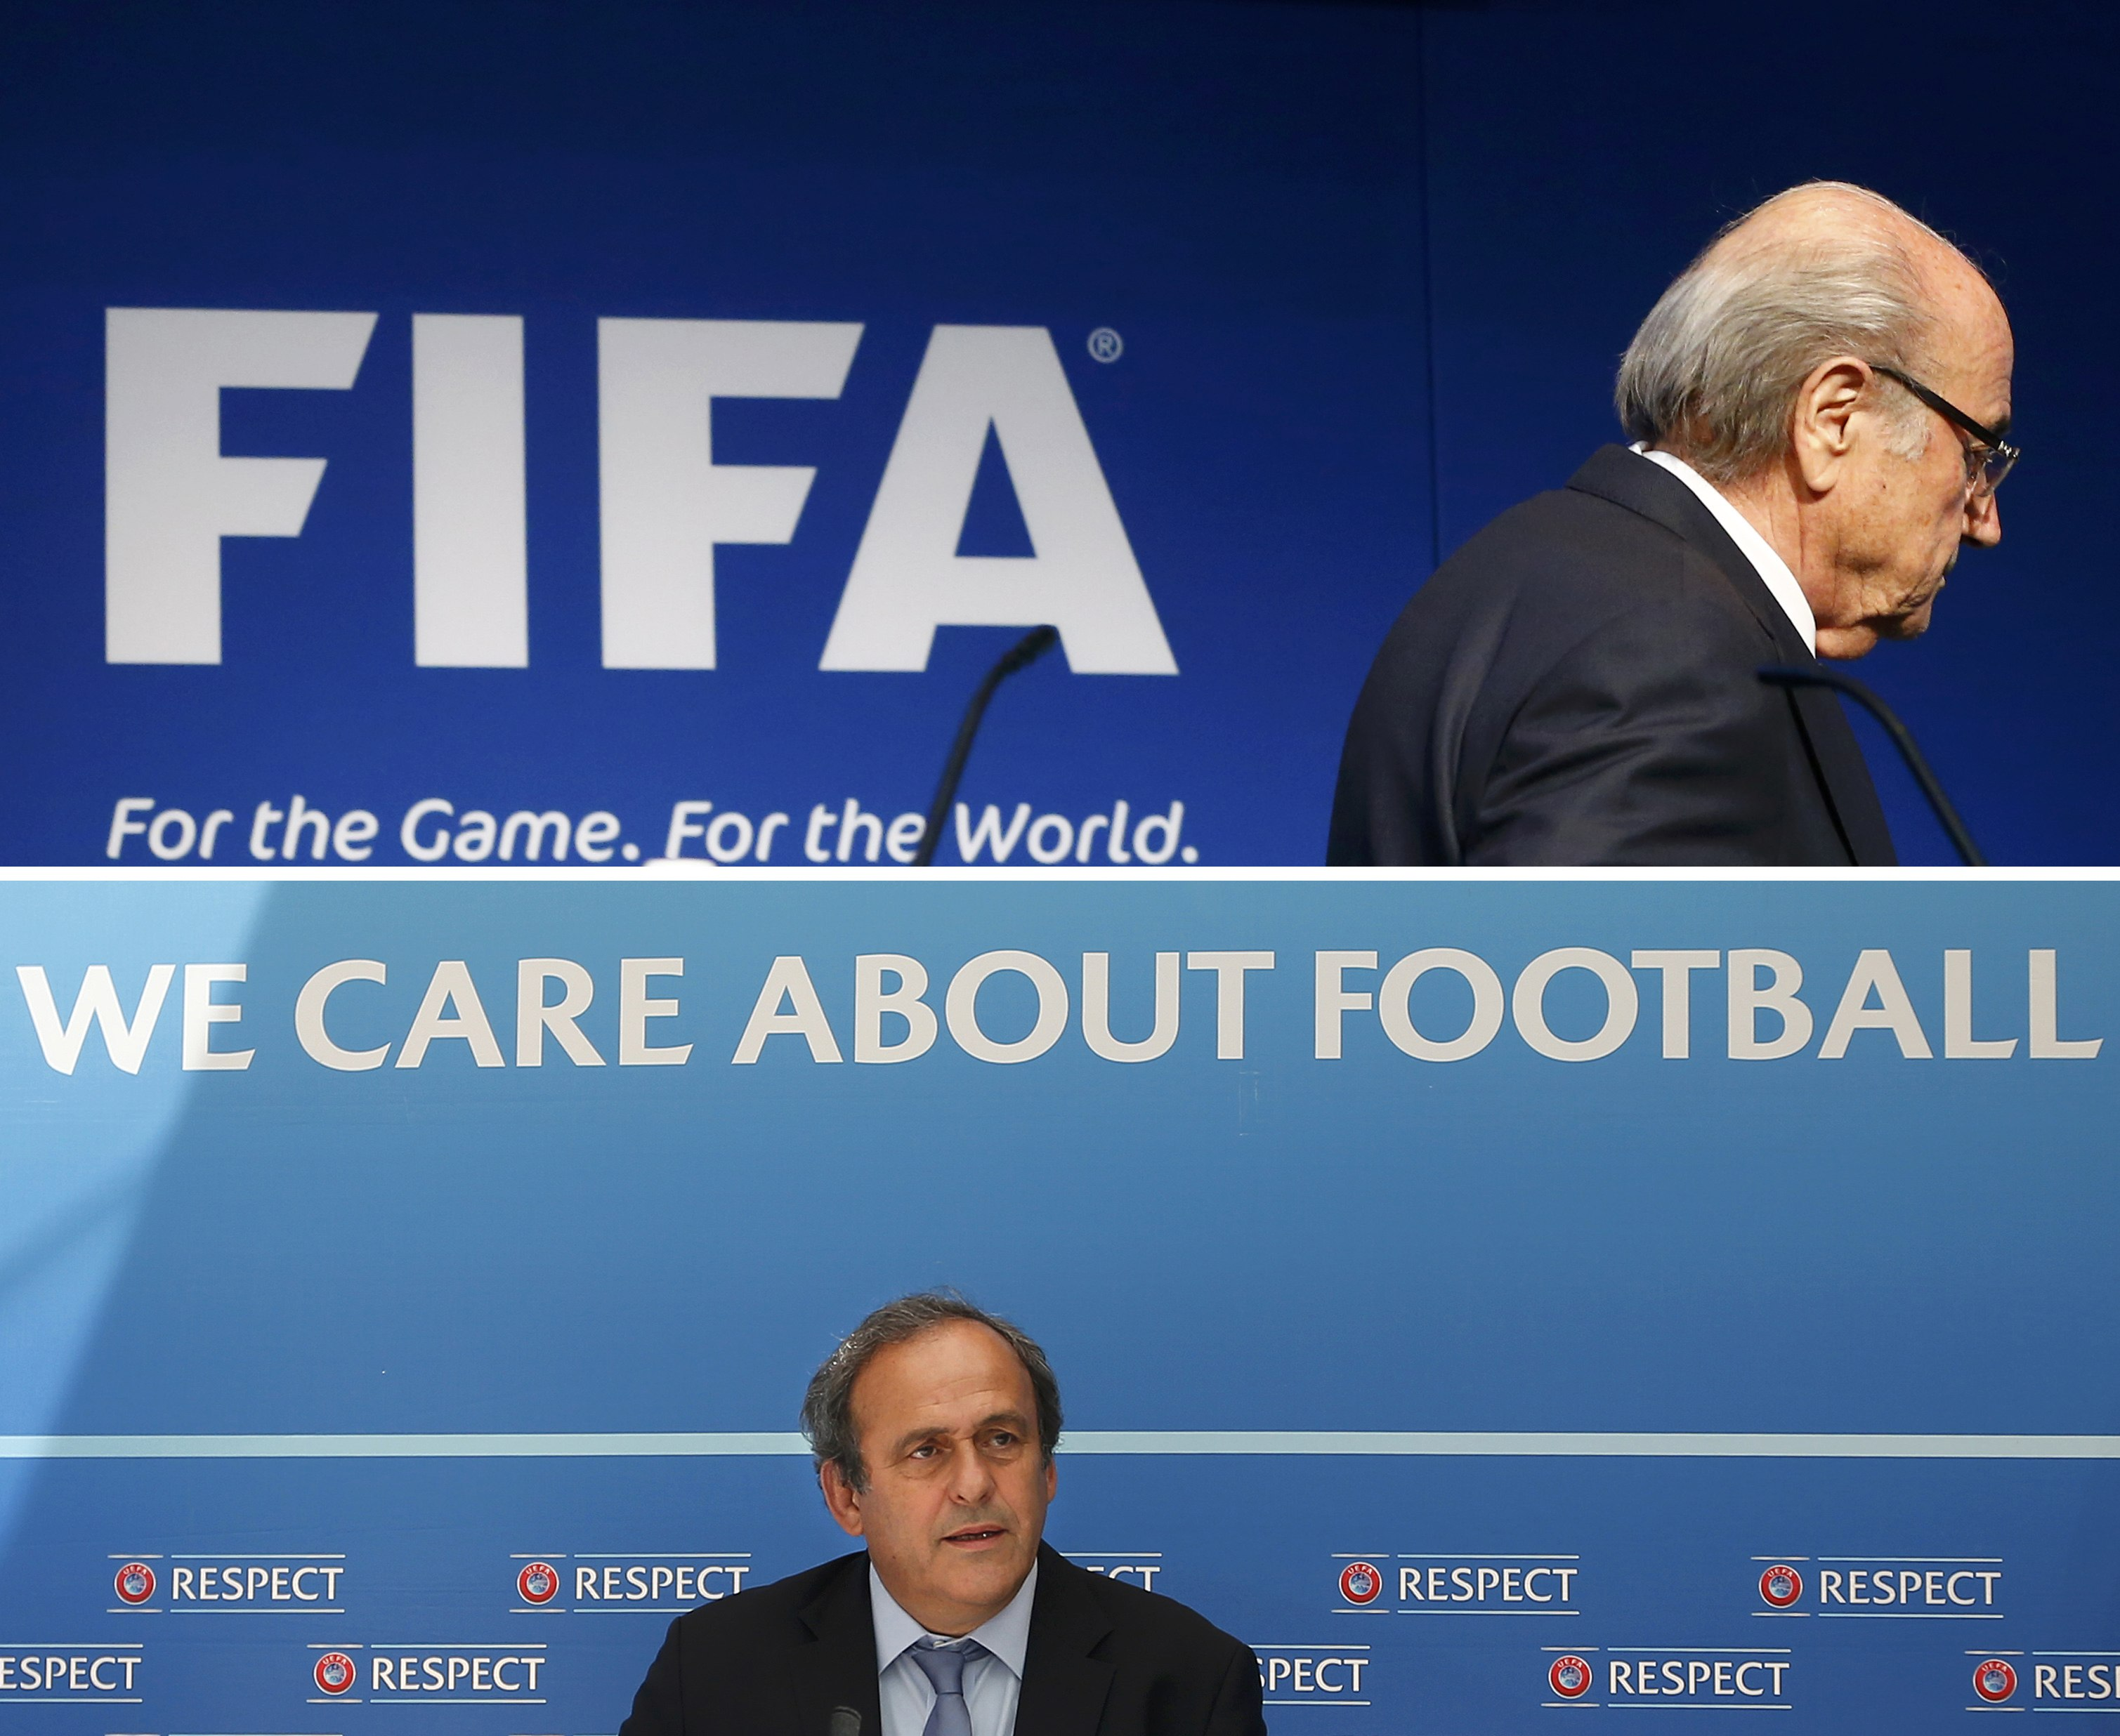 Combination file photograph of FIFA President Sepp Blatter leaving after his statement at the FIFA headquarters in Zurich, Switzerland, June 2, 2015 and UEFA President Michel Platini (lower) attending a news conference in Monte Carlo, Monaco August 28, 2015. Photo: Reuters